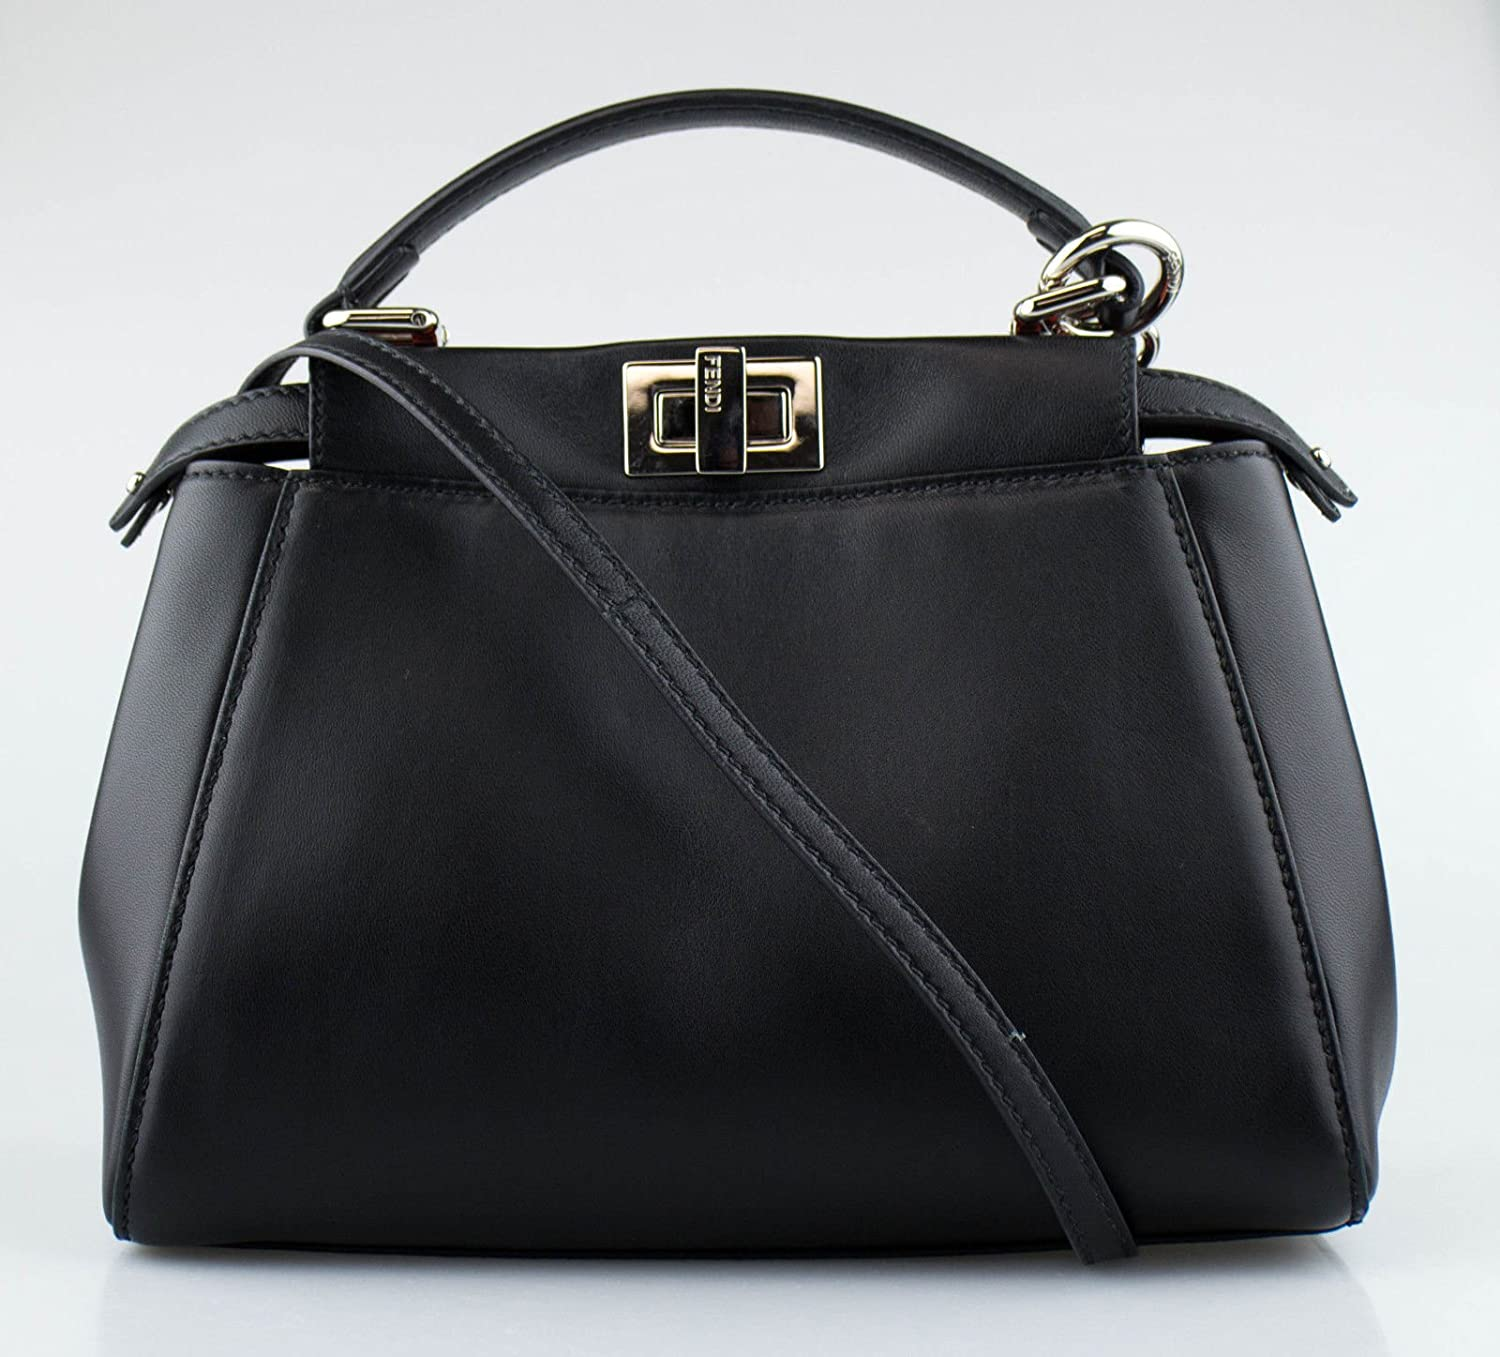 3bafd5aa9625 Amazon.com  Fendi Black Python Monster Eyes Peekaboo Shoulder Strap Mini  Handbag  Baby